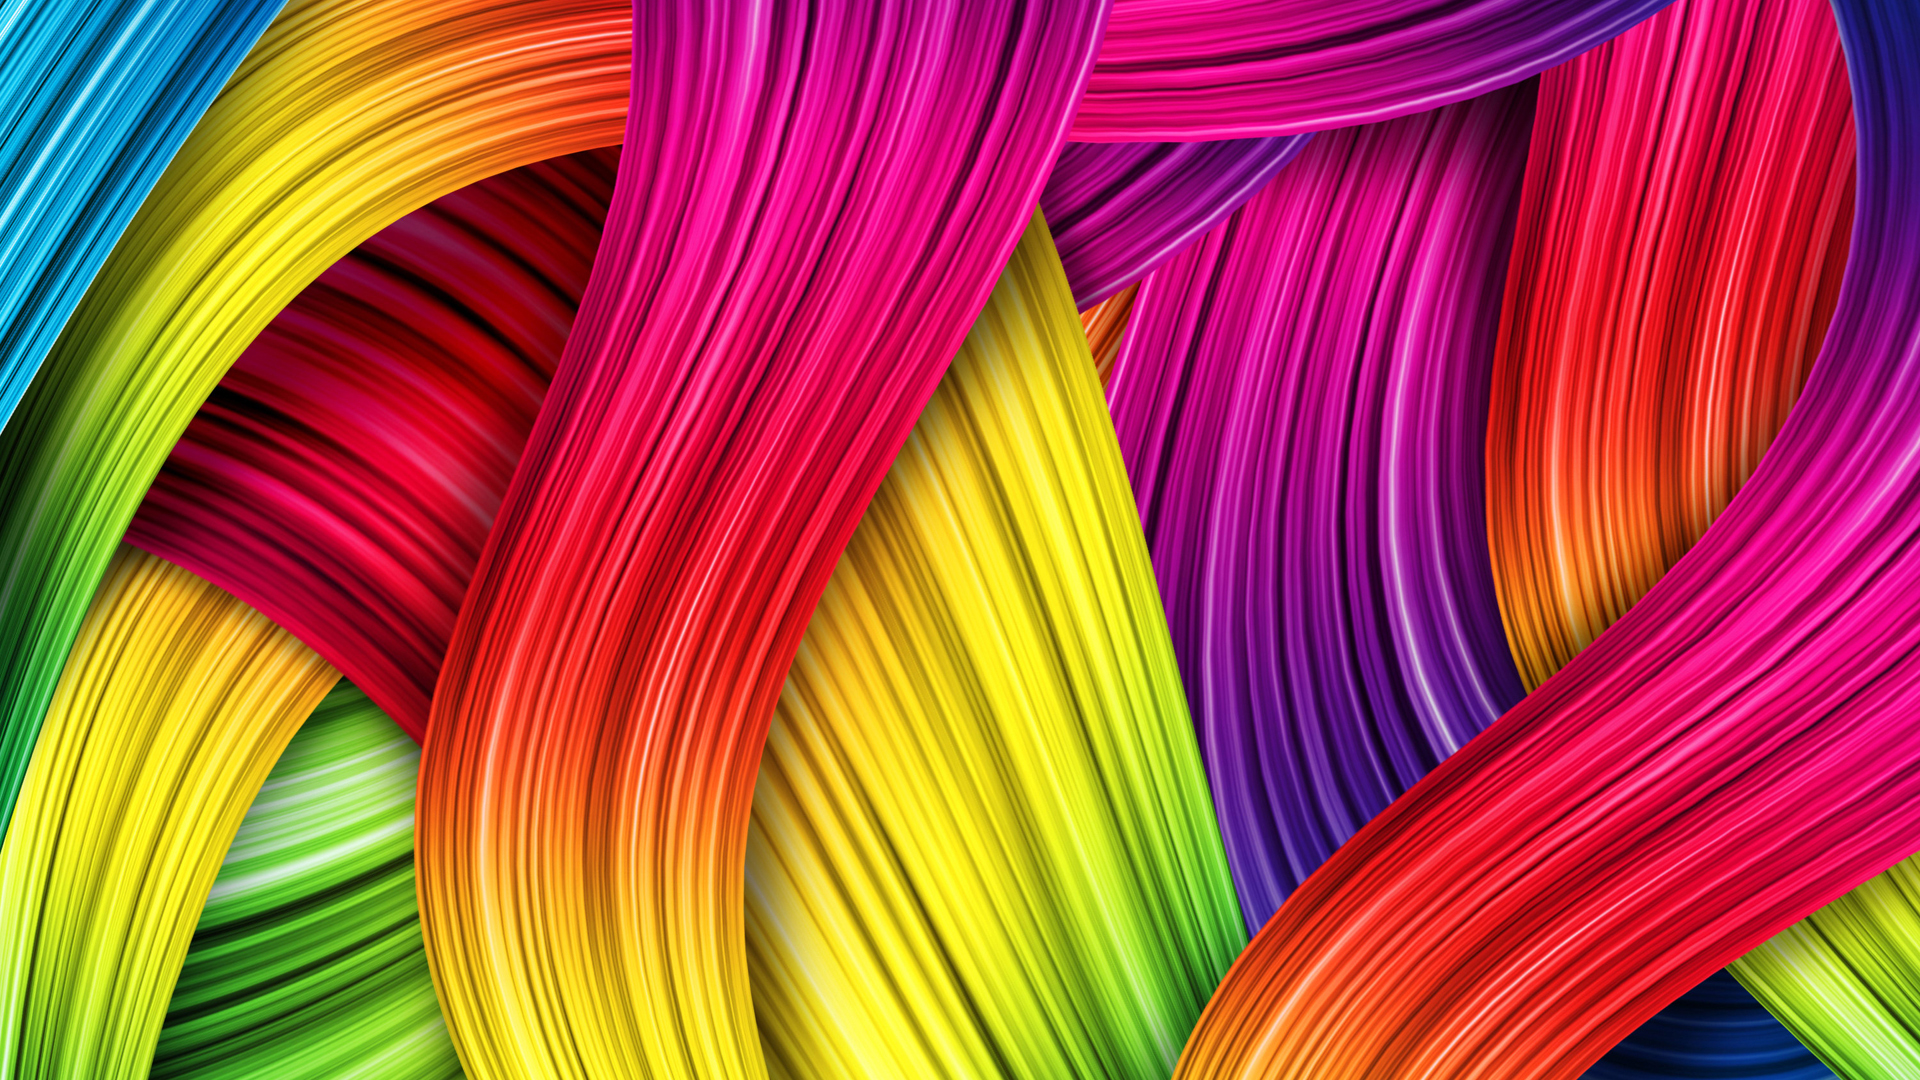 colorful abstract hd desktop wallpaper download this wallpaper for 1920x1080